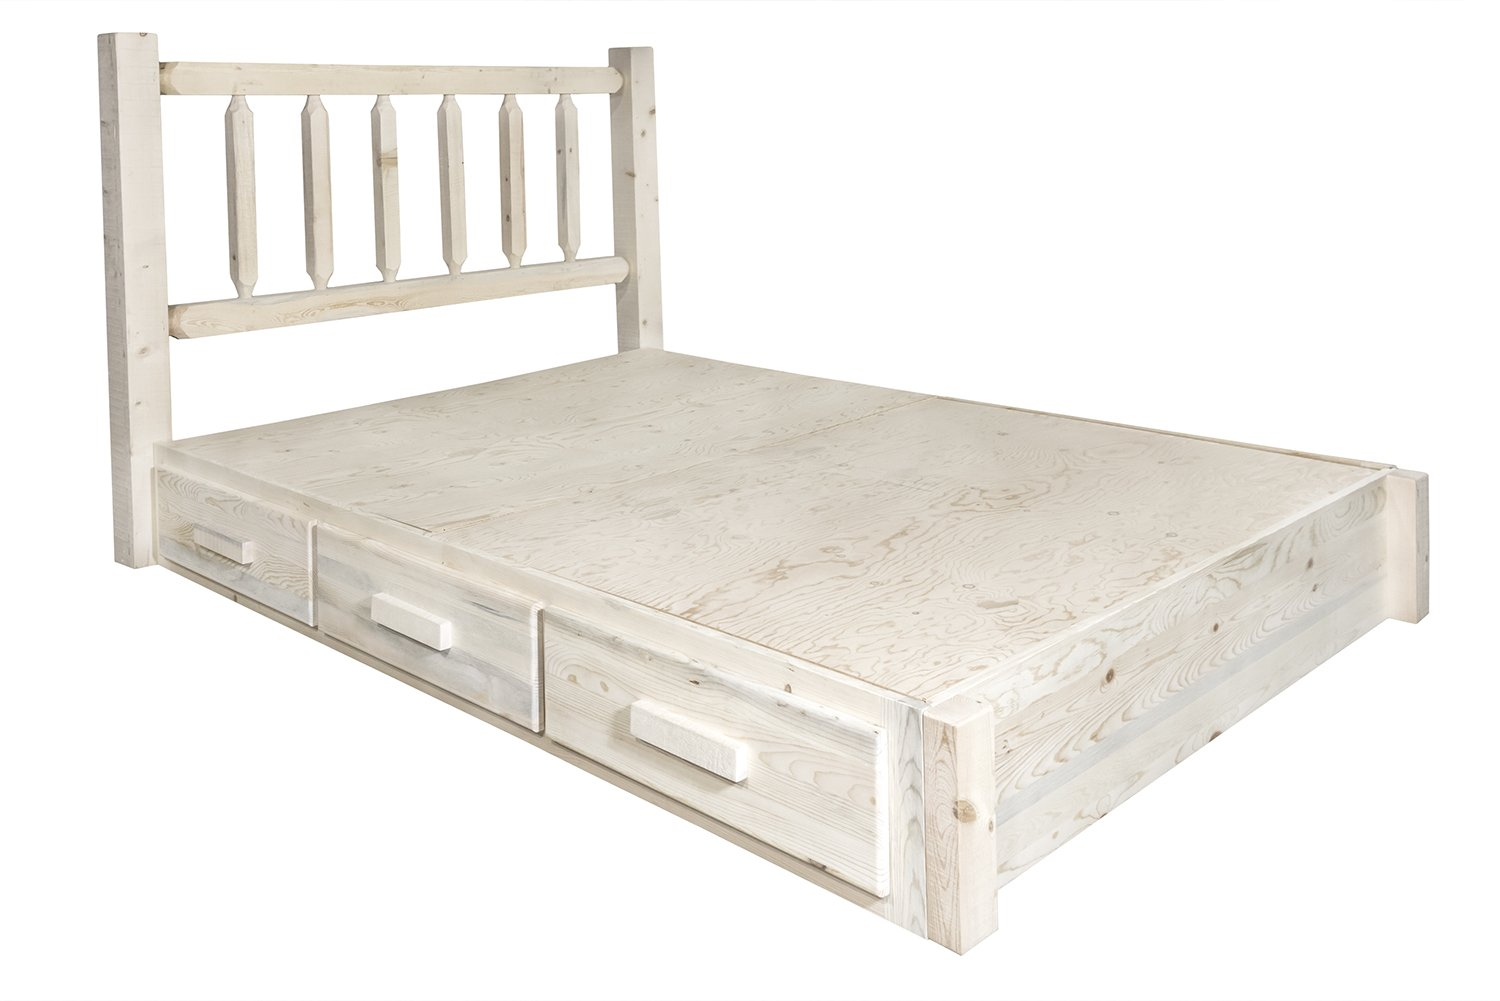 Amazon.com: Montana Woodworks MWHCSBPK Homestead Collection King Platform Bed with Storage, Ready to Finish: Kitchen & Dining